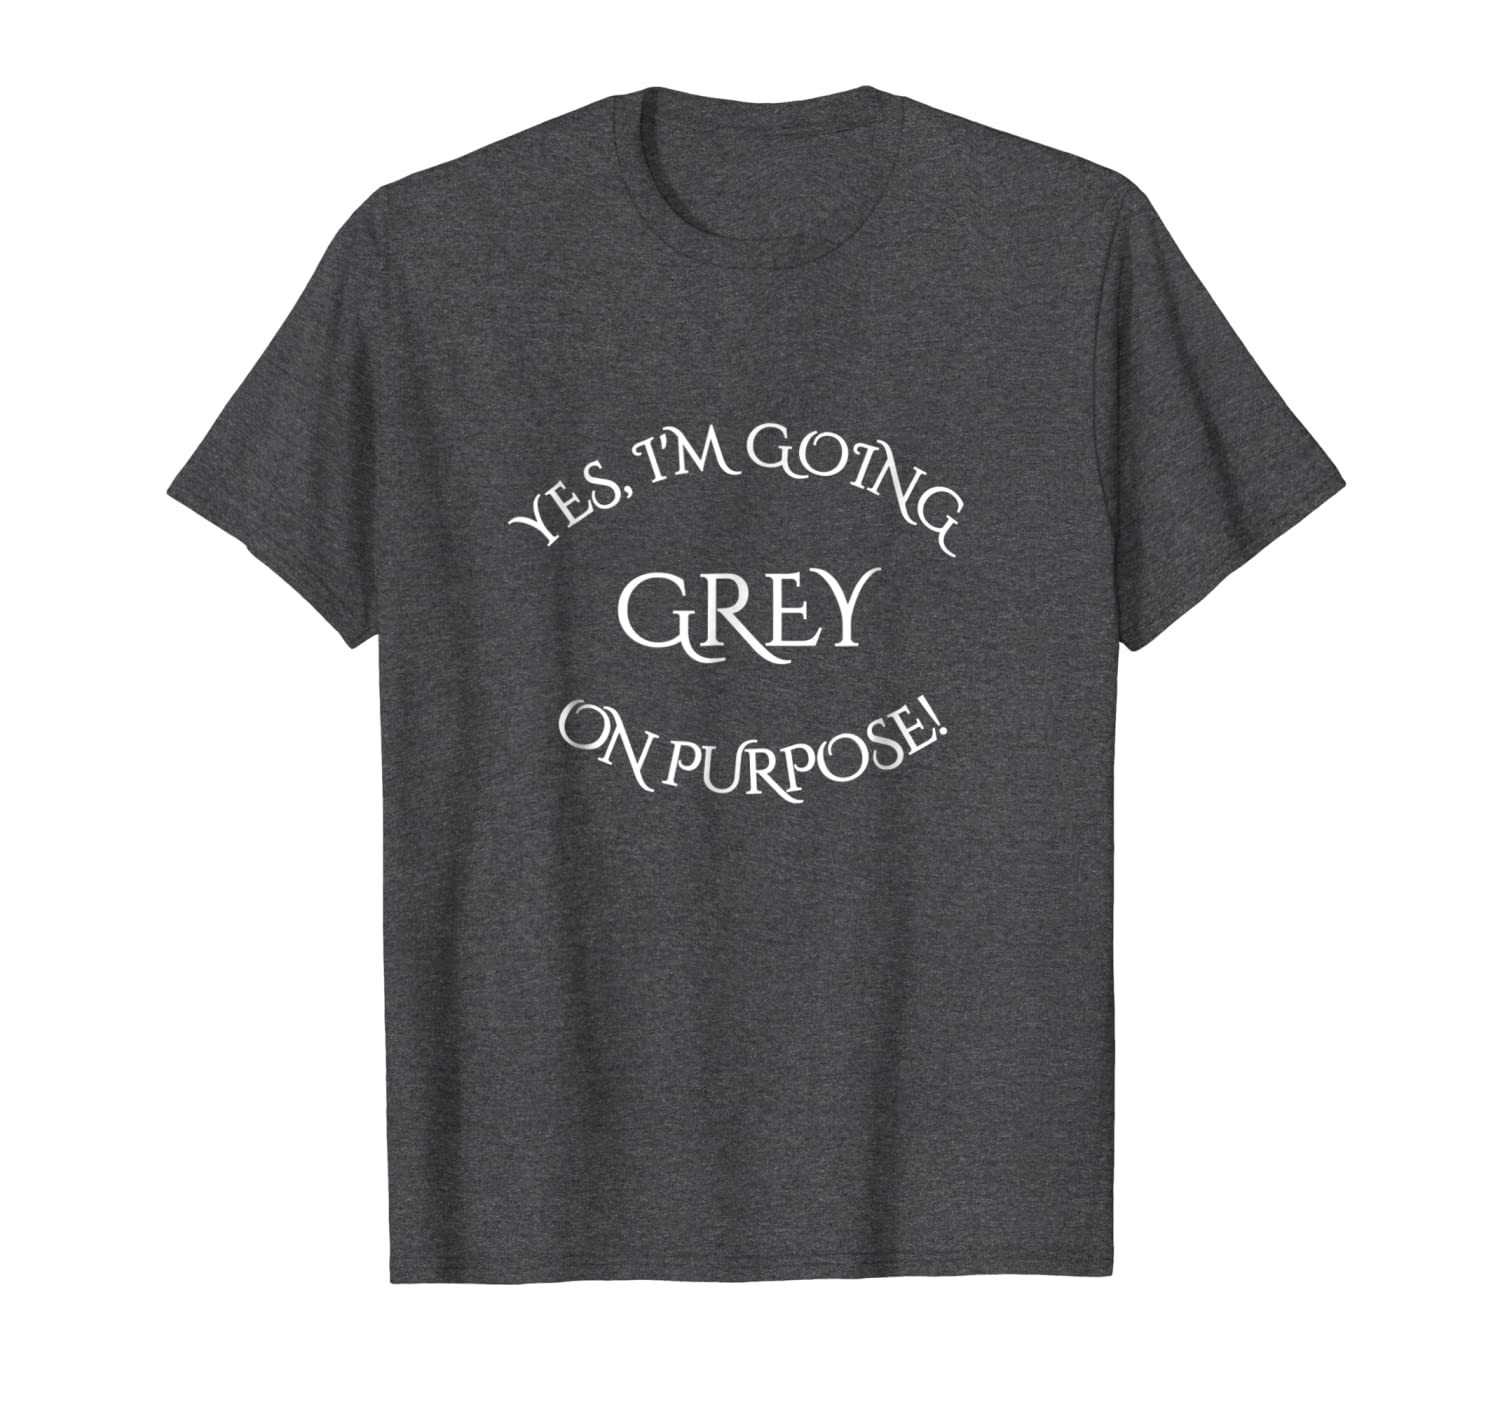 67689180f0a2 Amazon.com: Grey Gray Hair On Purpose T-Shirt Funny Natural Grey Silver:  Clothing